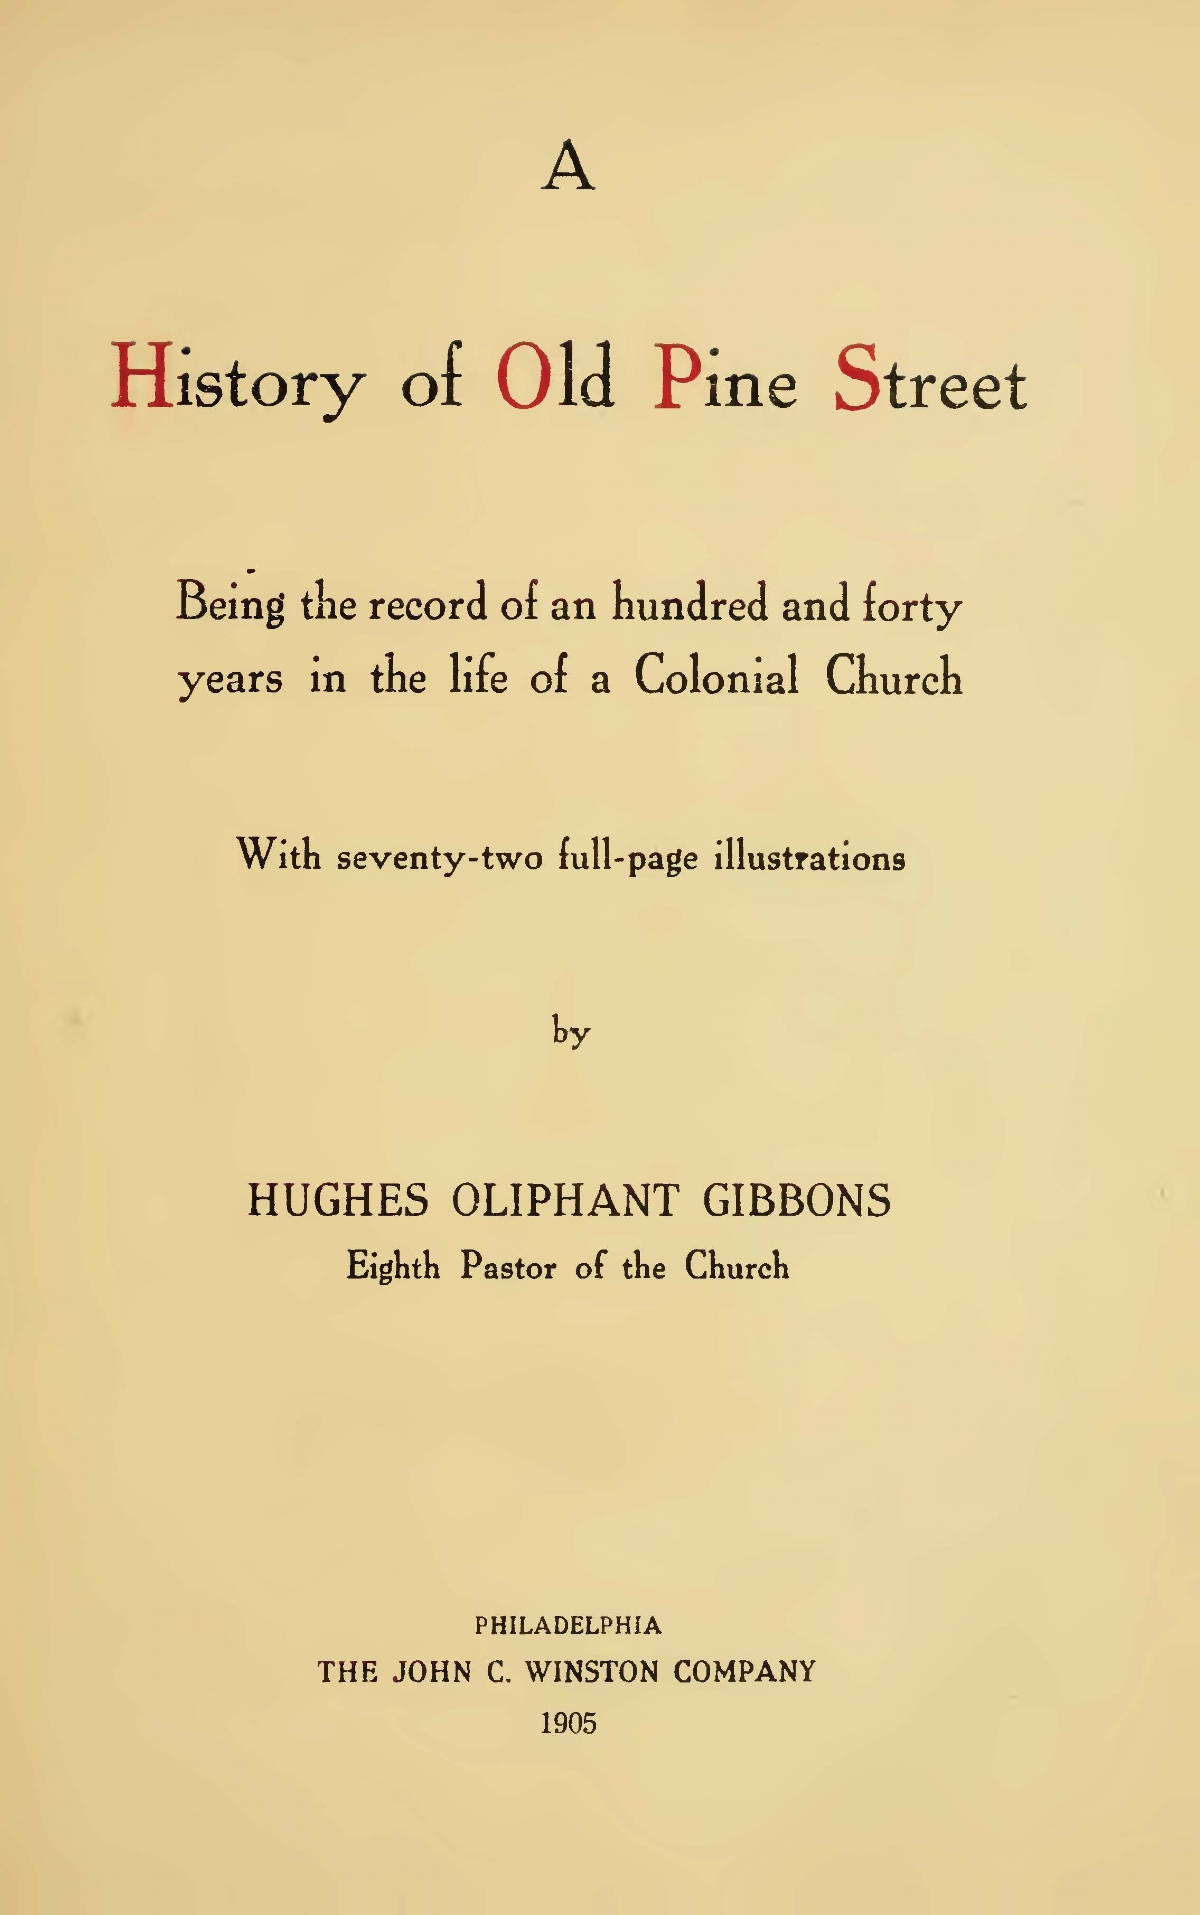 Gibbons, Hughes Oliphant, A History of Old Pine Street Title Page.jpg